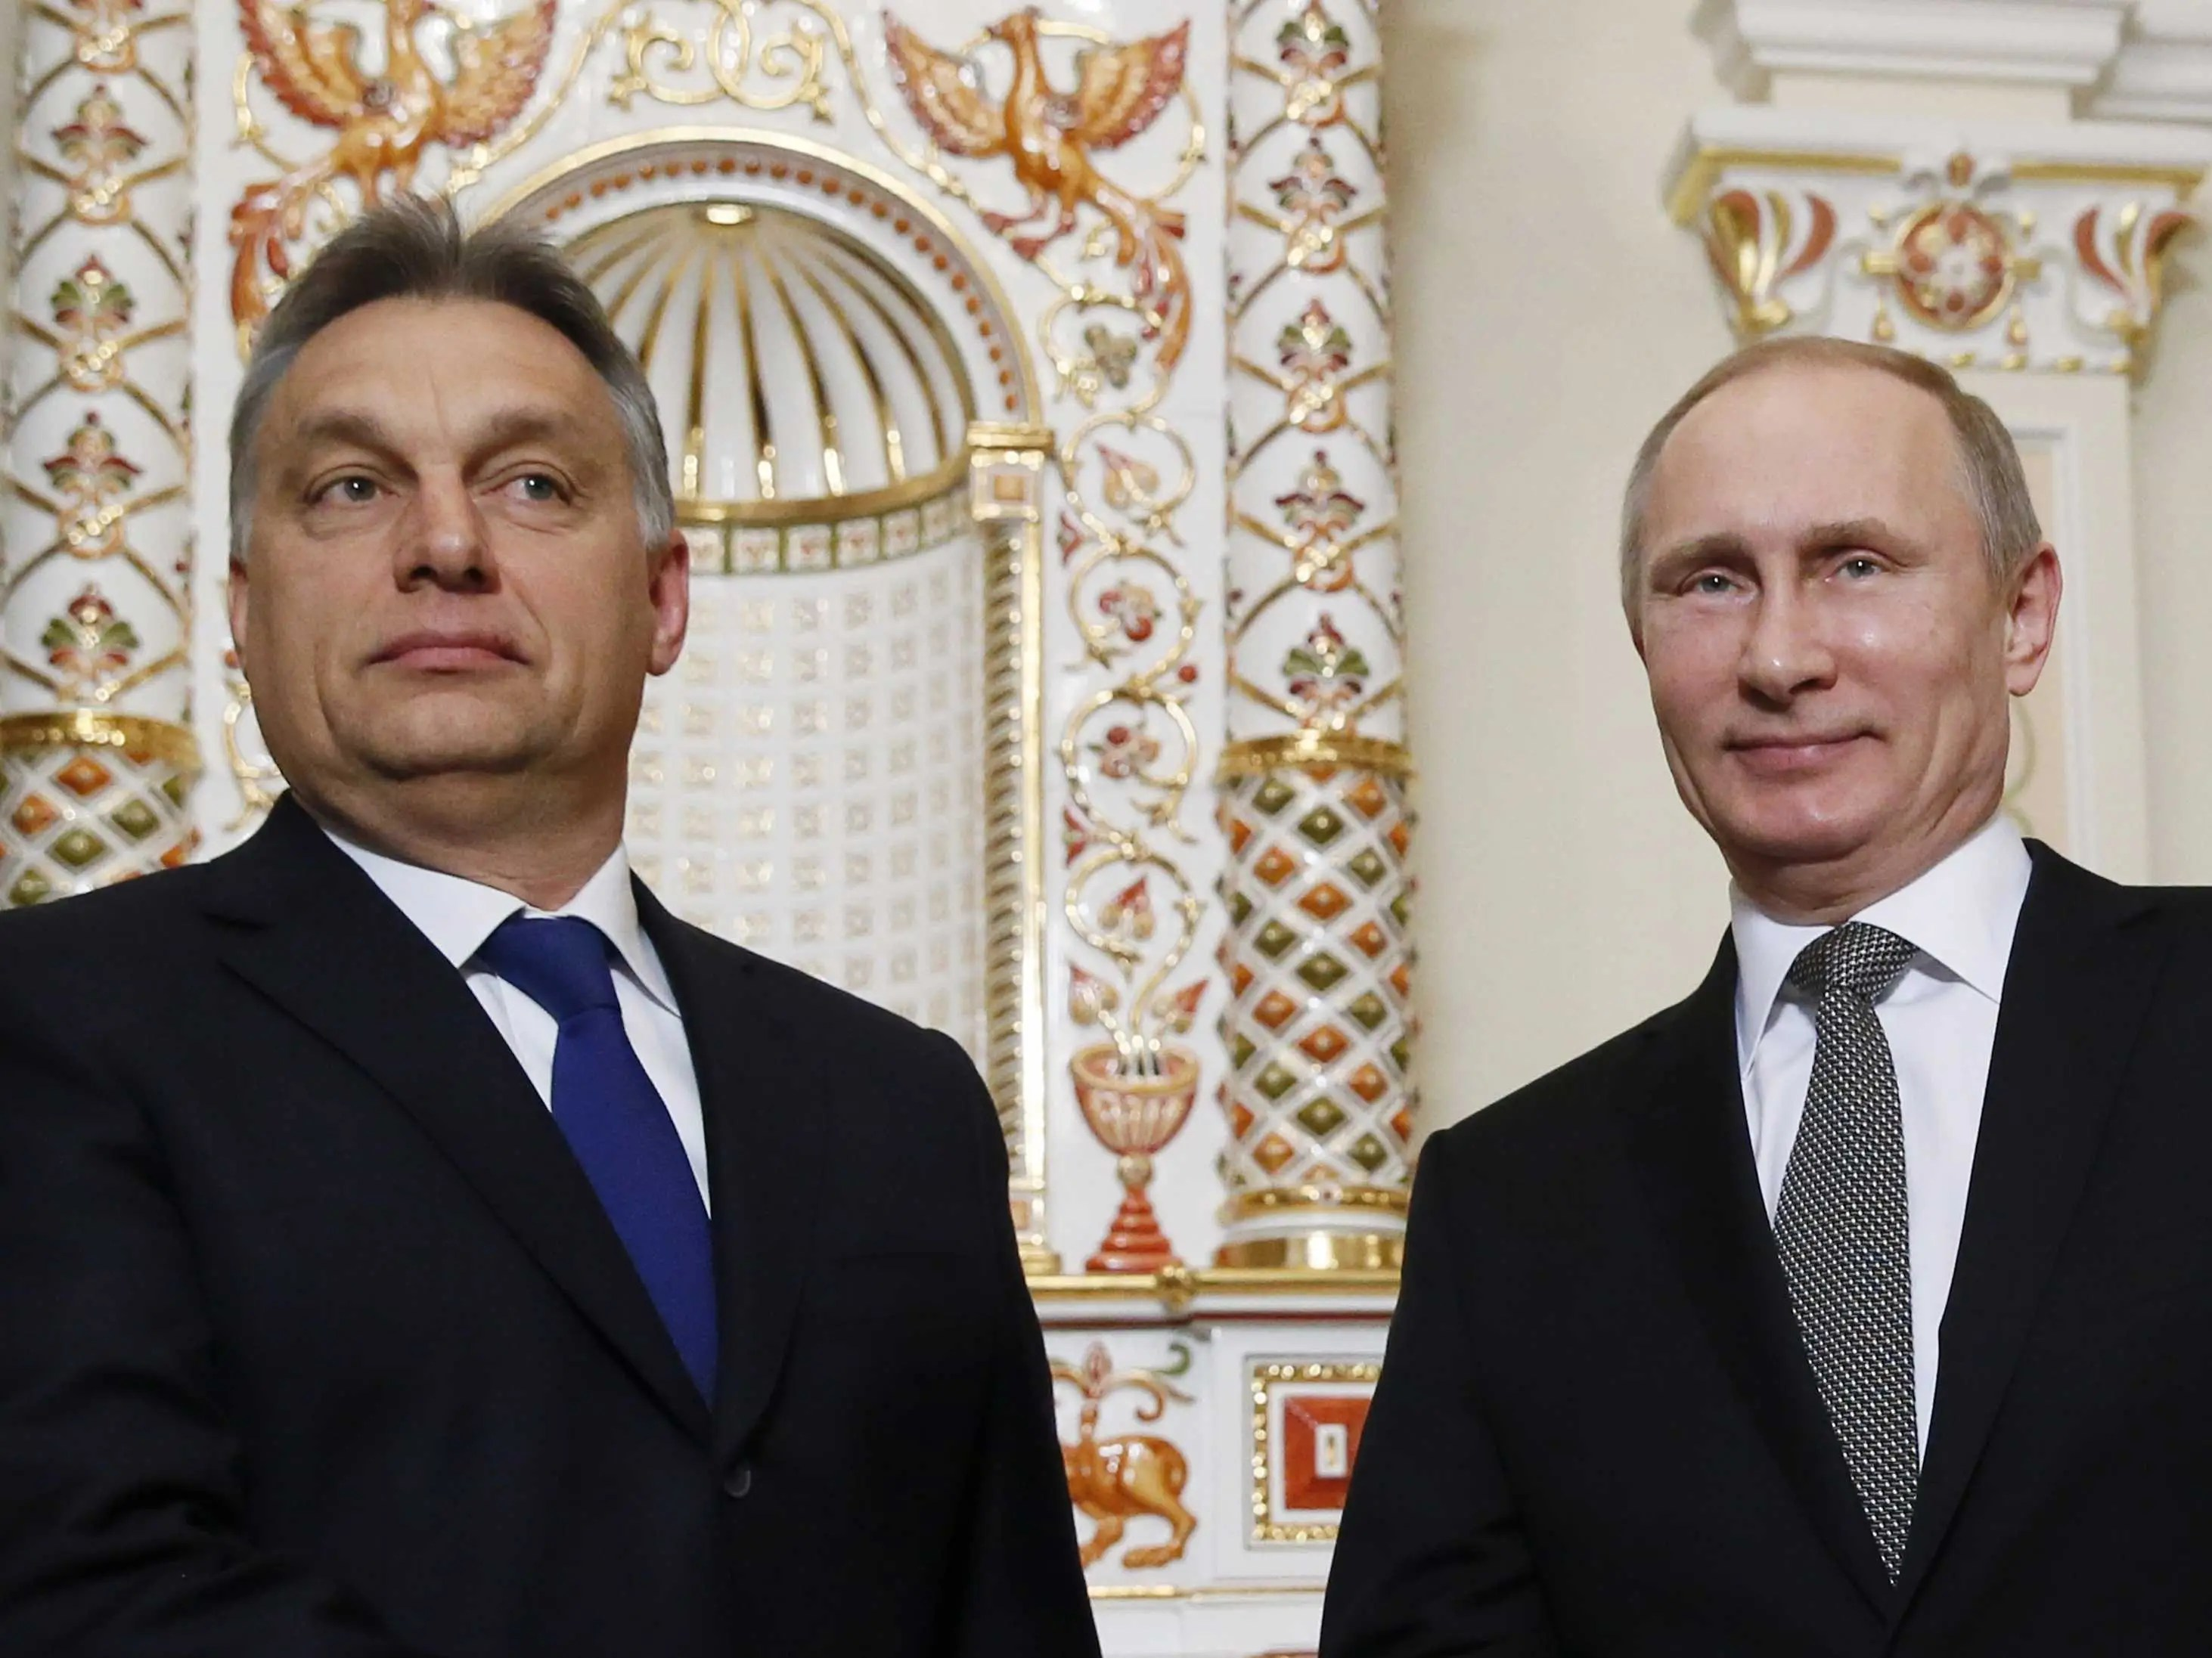 Vladimir Putin and Viktor Orban